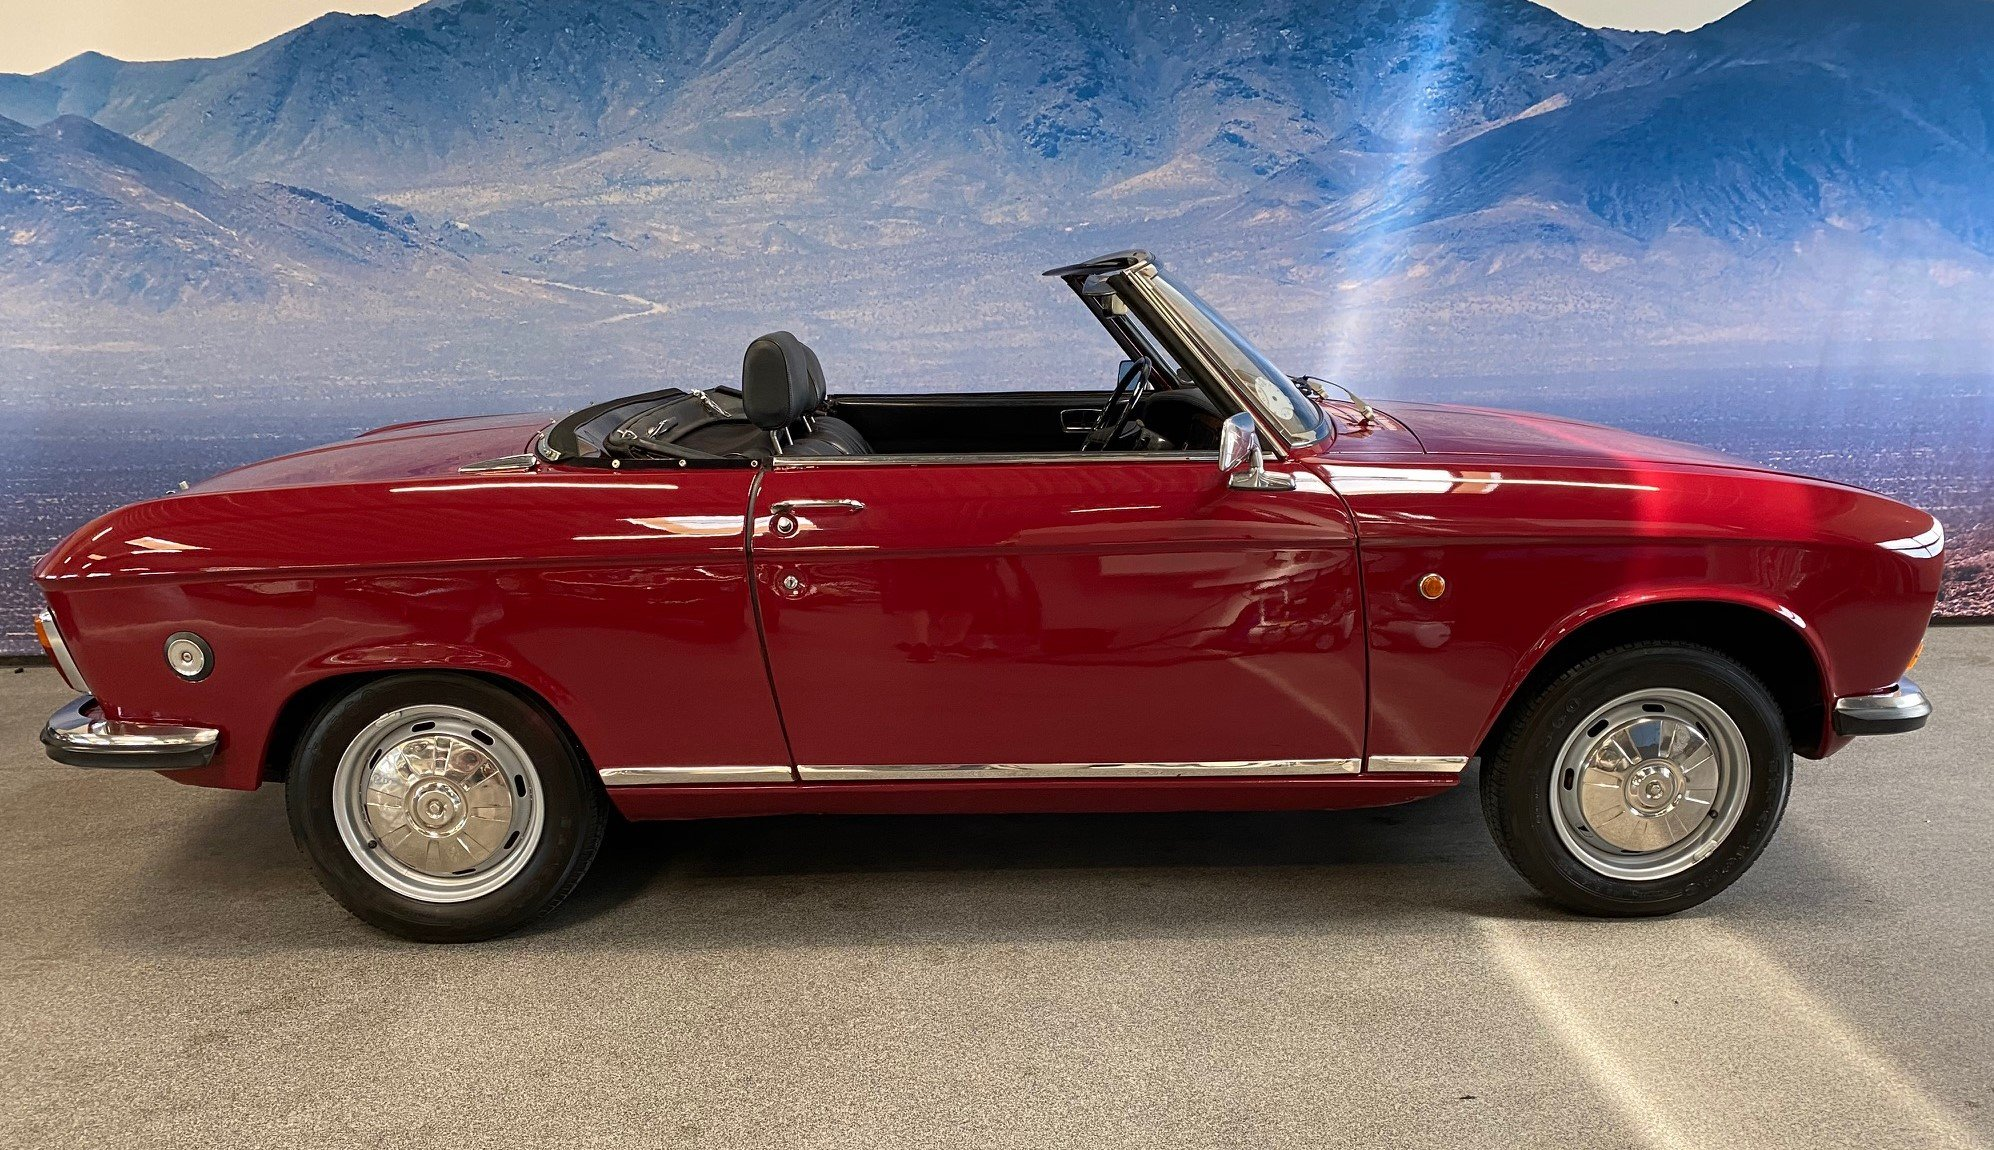 1972 Peugeot 304 1,3 Roadster  For Sale (picture 2 of 6)